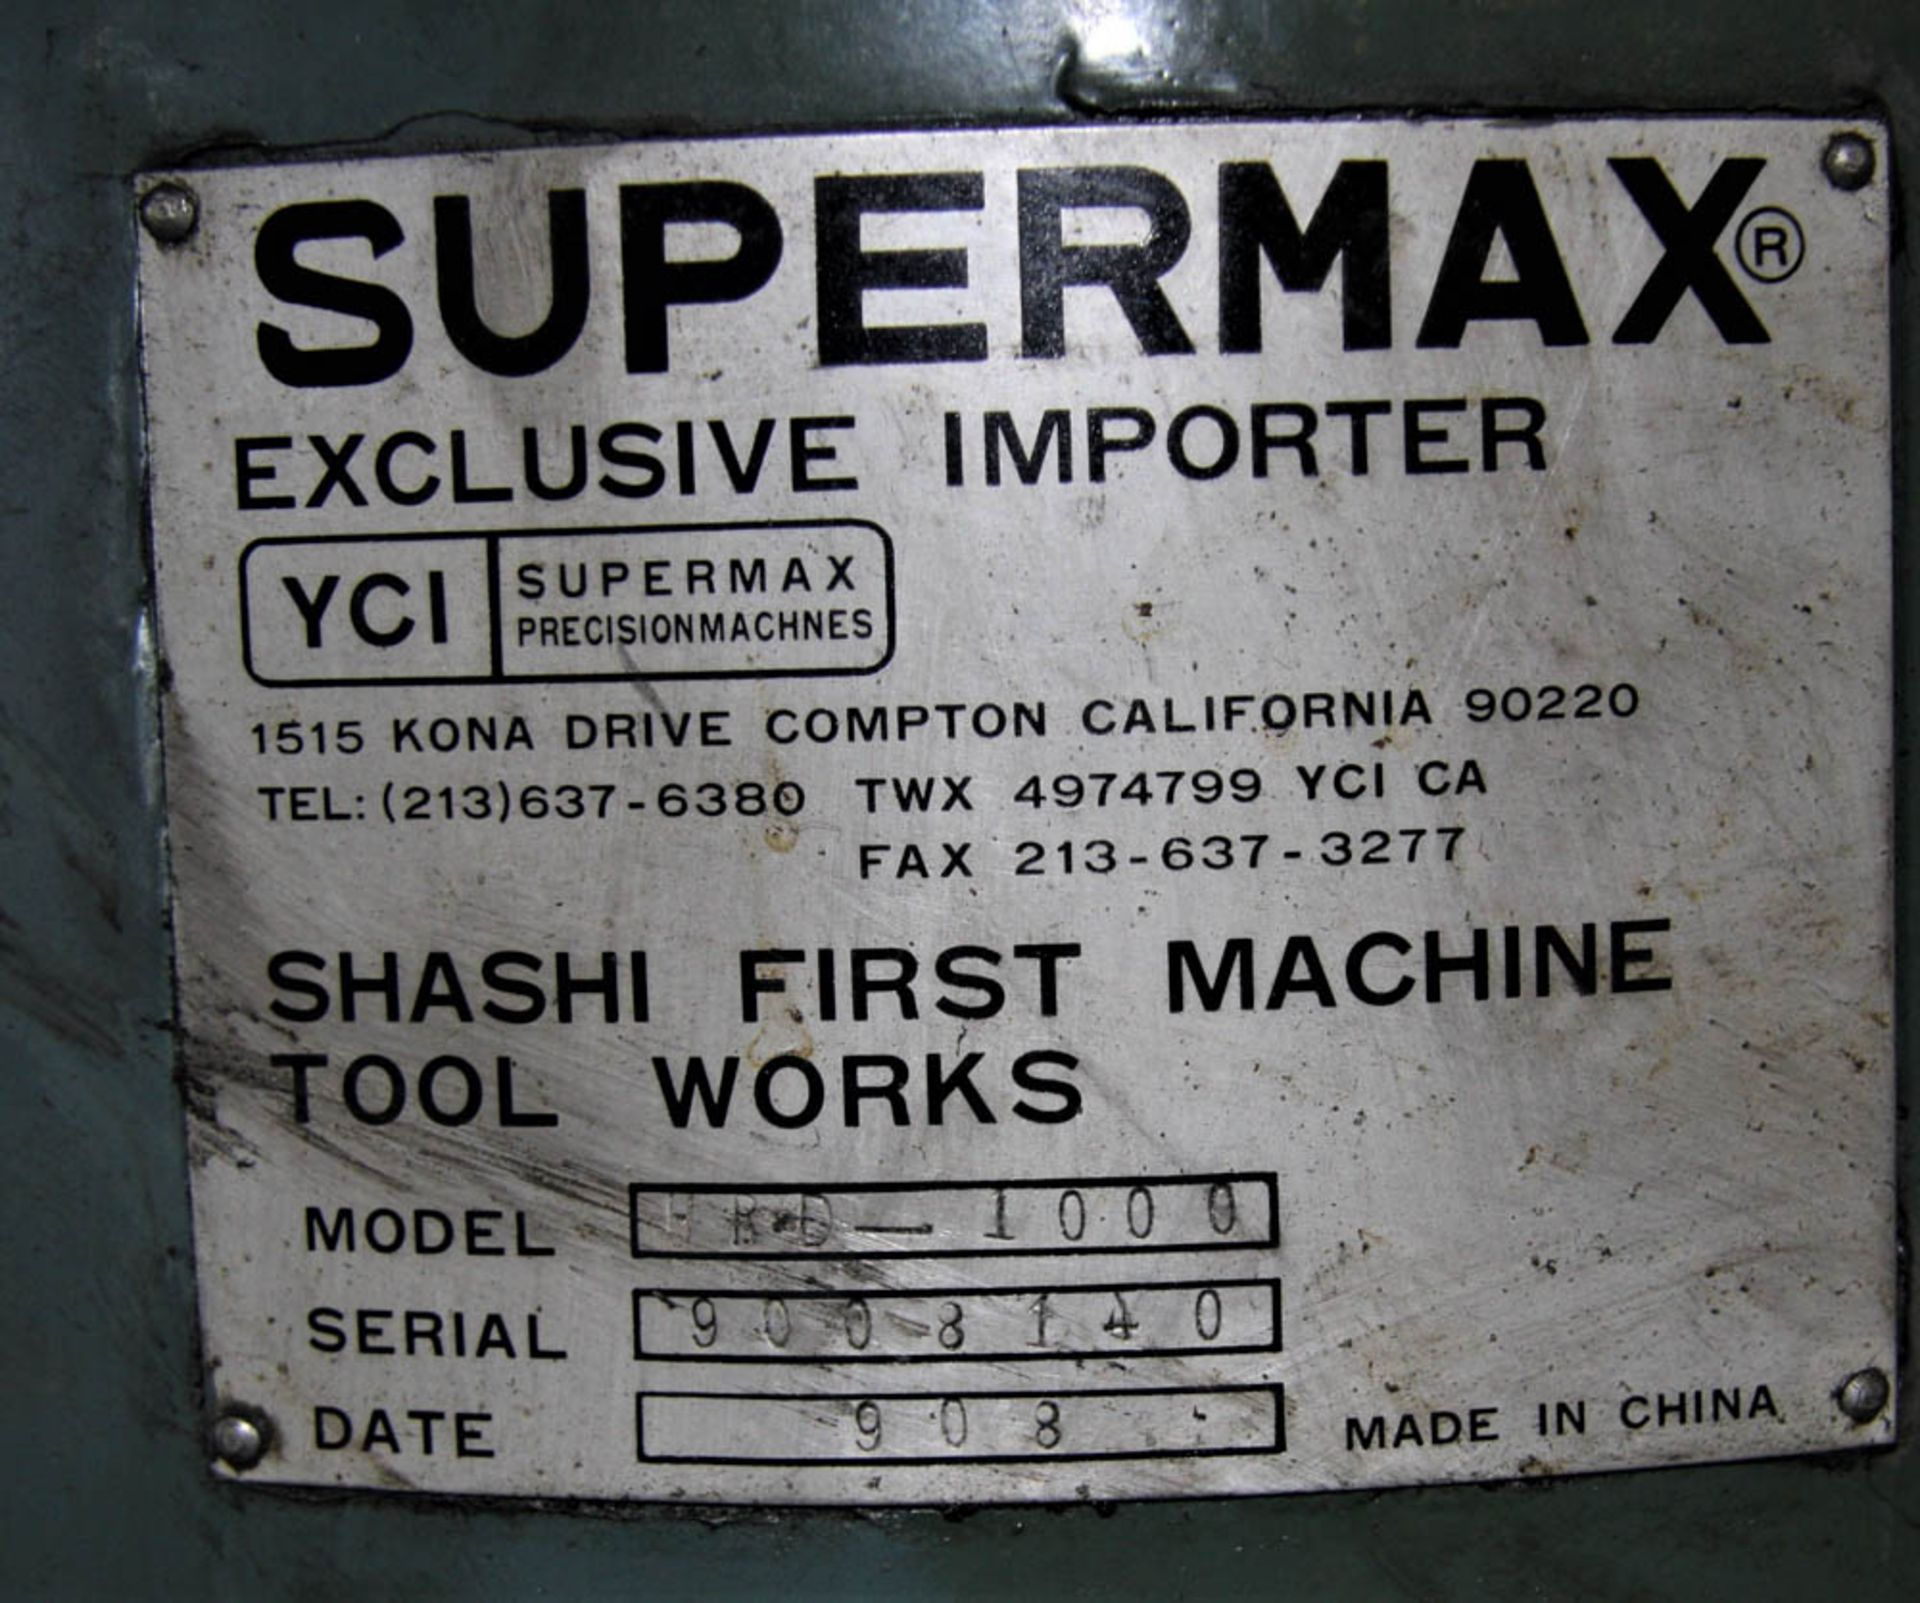 """SUPERMAX MDL. HRD-1000 3' X 9' RADIAL ARM DRILL, POWER ELEVATION, COOLANT, 17"""" X 18"""" X 18"""" T-SLOTTED - Image 4 of 11"""